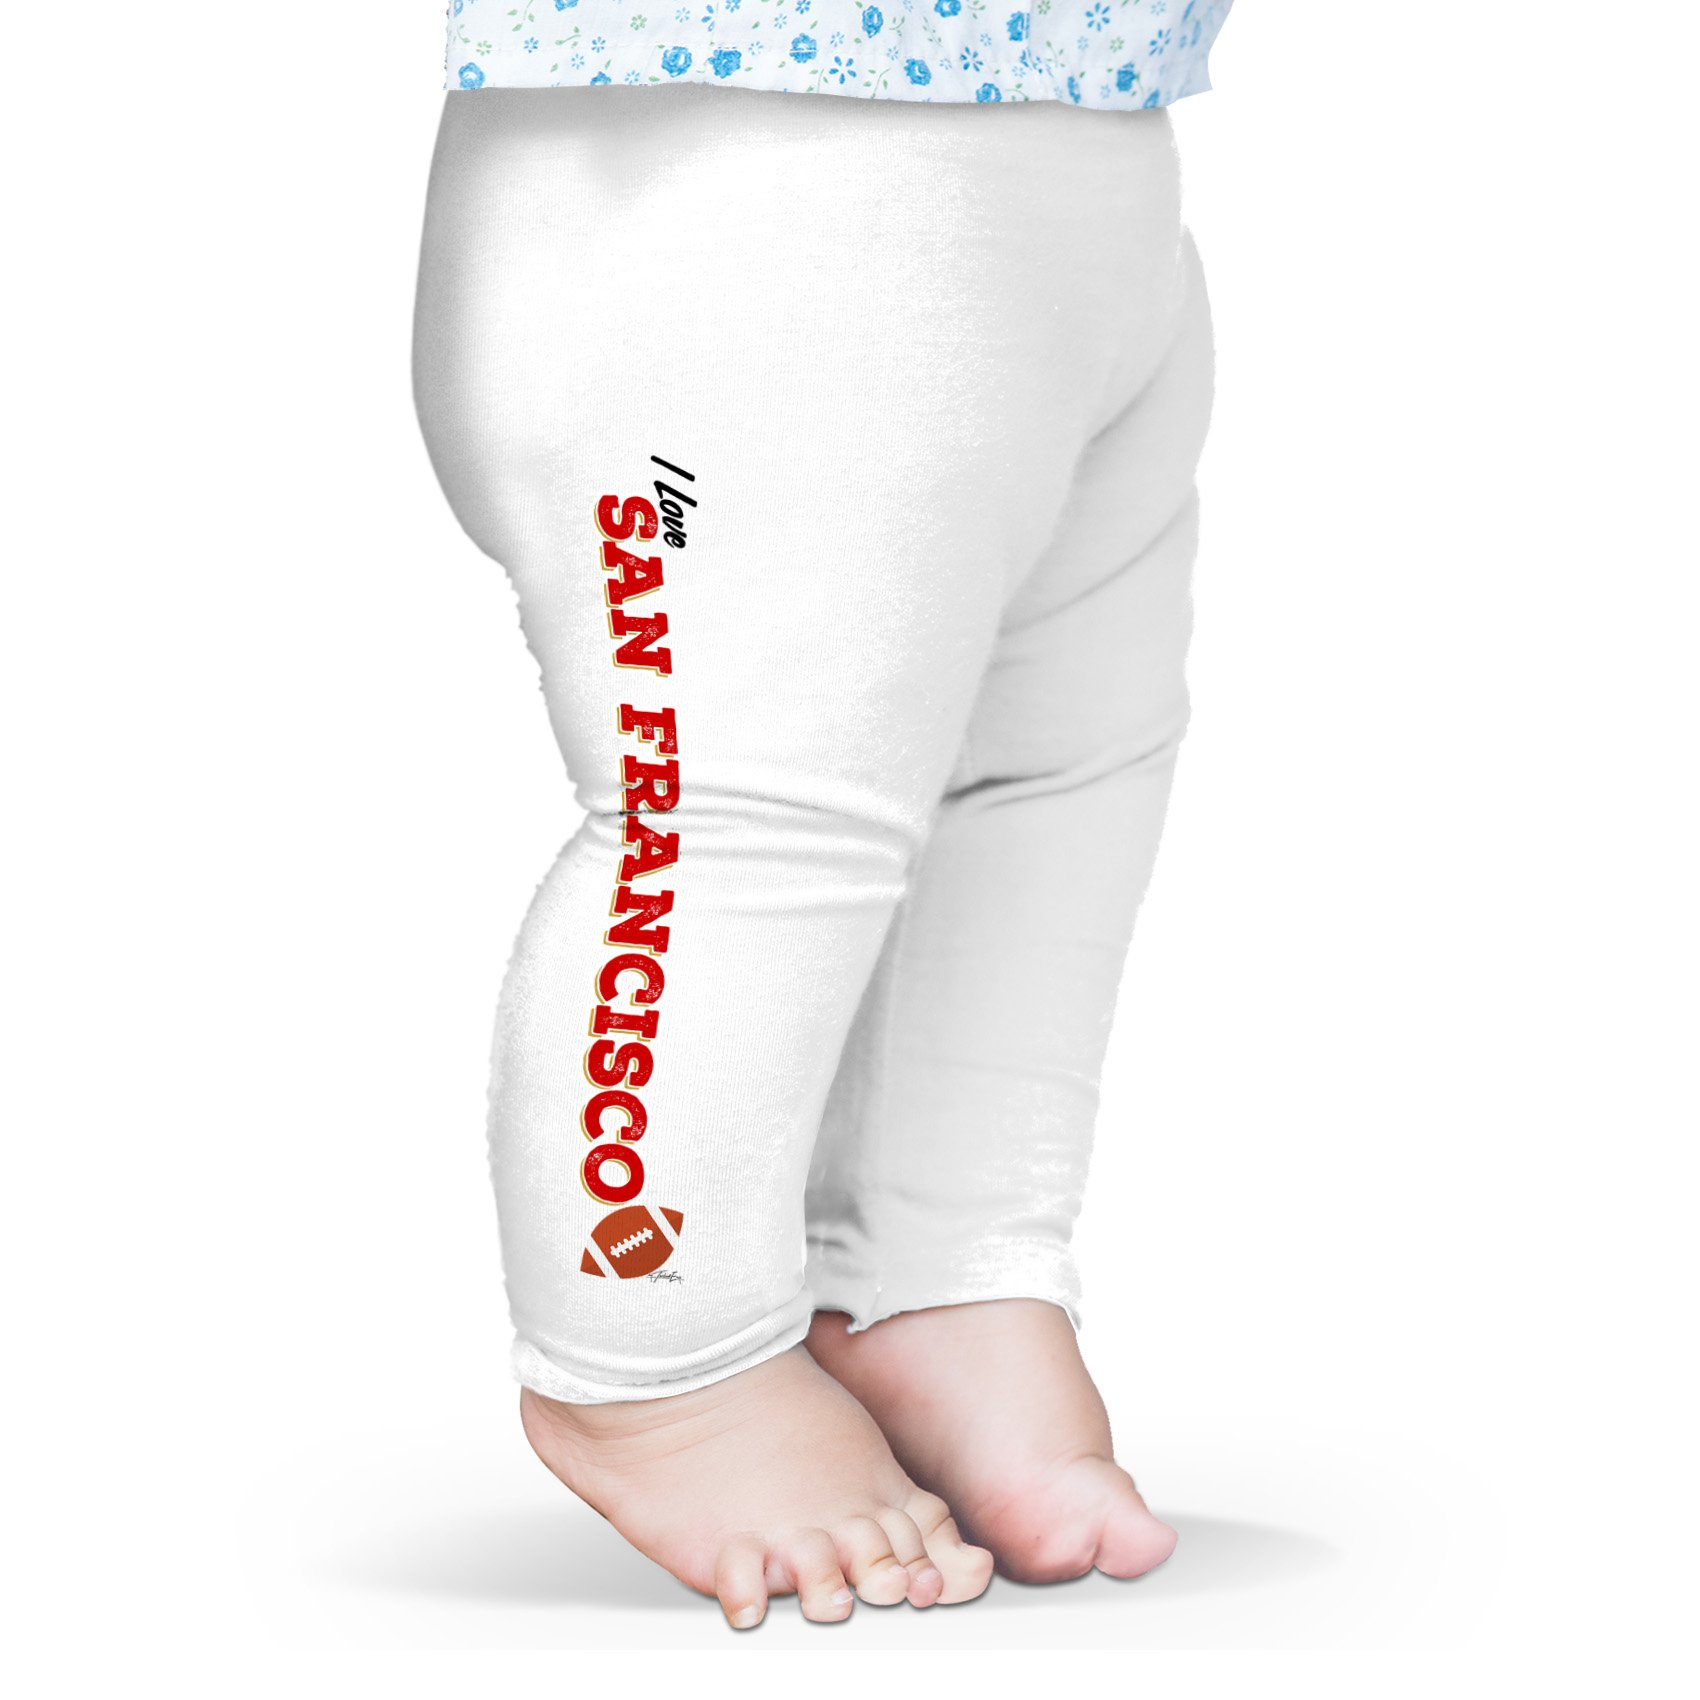 Twisted Envy Baby I Love San Francisco American Football Leggings Trousers 12-18 Months White by TWISTED ENVY (Image #1)